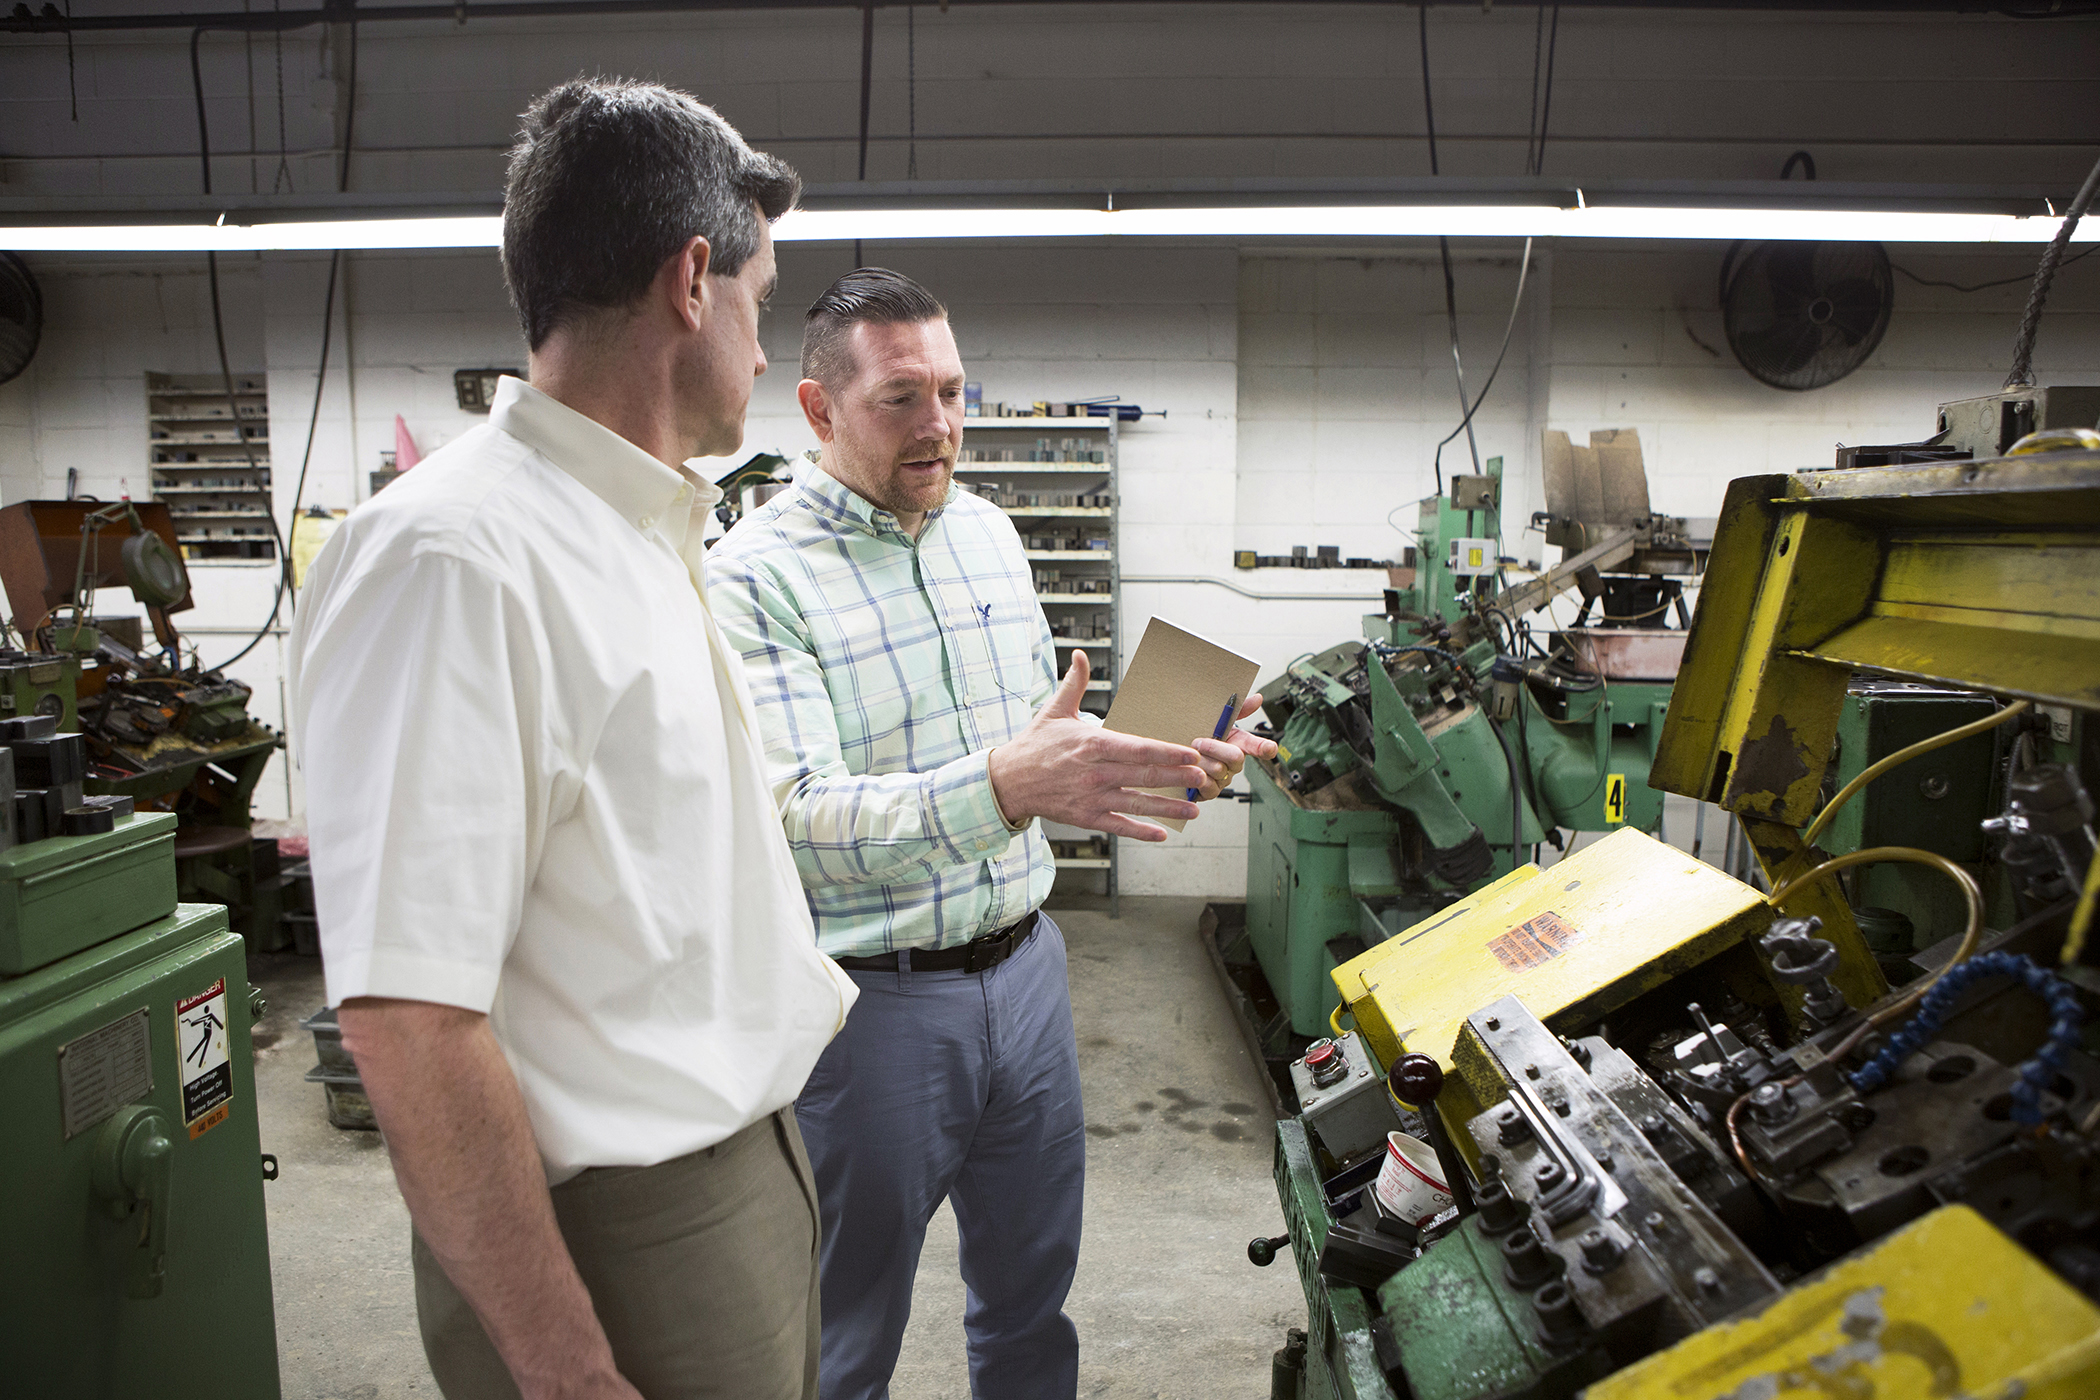 Nathan Bonds (right) talks with Christian Cowan (left), the Center Director for Polaris' Manufacturing Extension Partnership, at Rhode Island–based manufacturer Pilgrim Screw, about ways to improve their efficiencies and projects to improve their current processes and business needs. They make screws used only by the Aviation Industry.